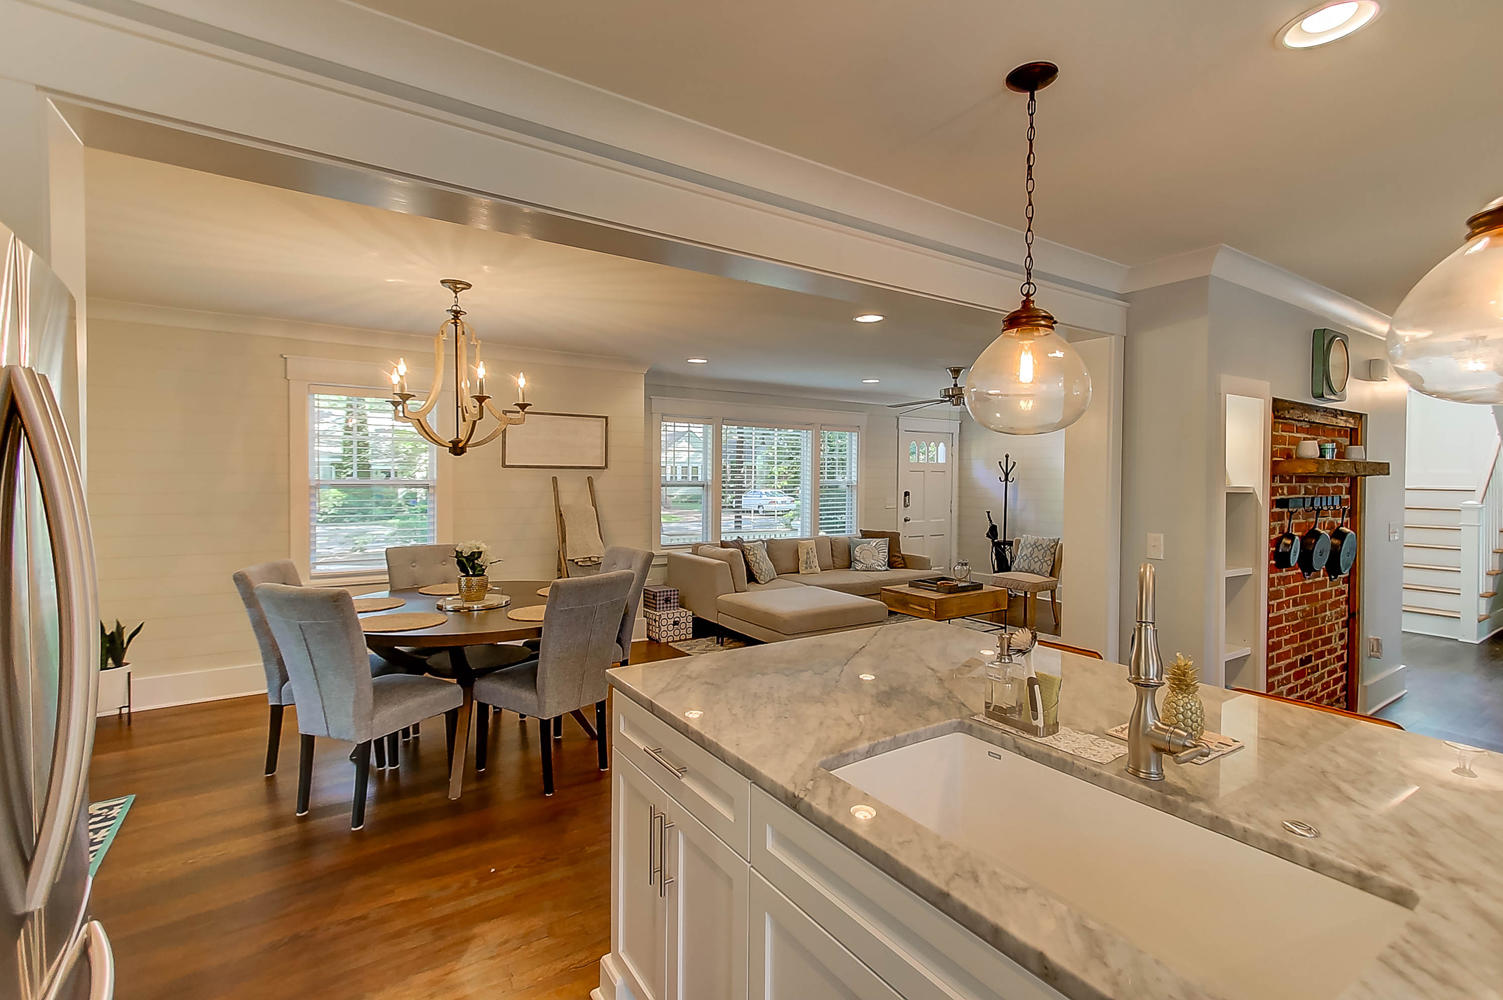 Riverland Terrace Homes For Sale - 2138 Wappoo, Charleston, SC - 21